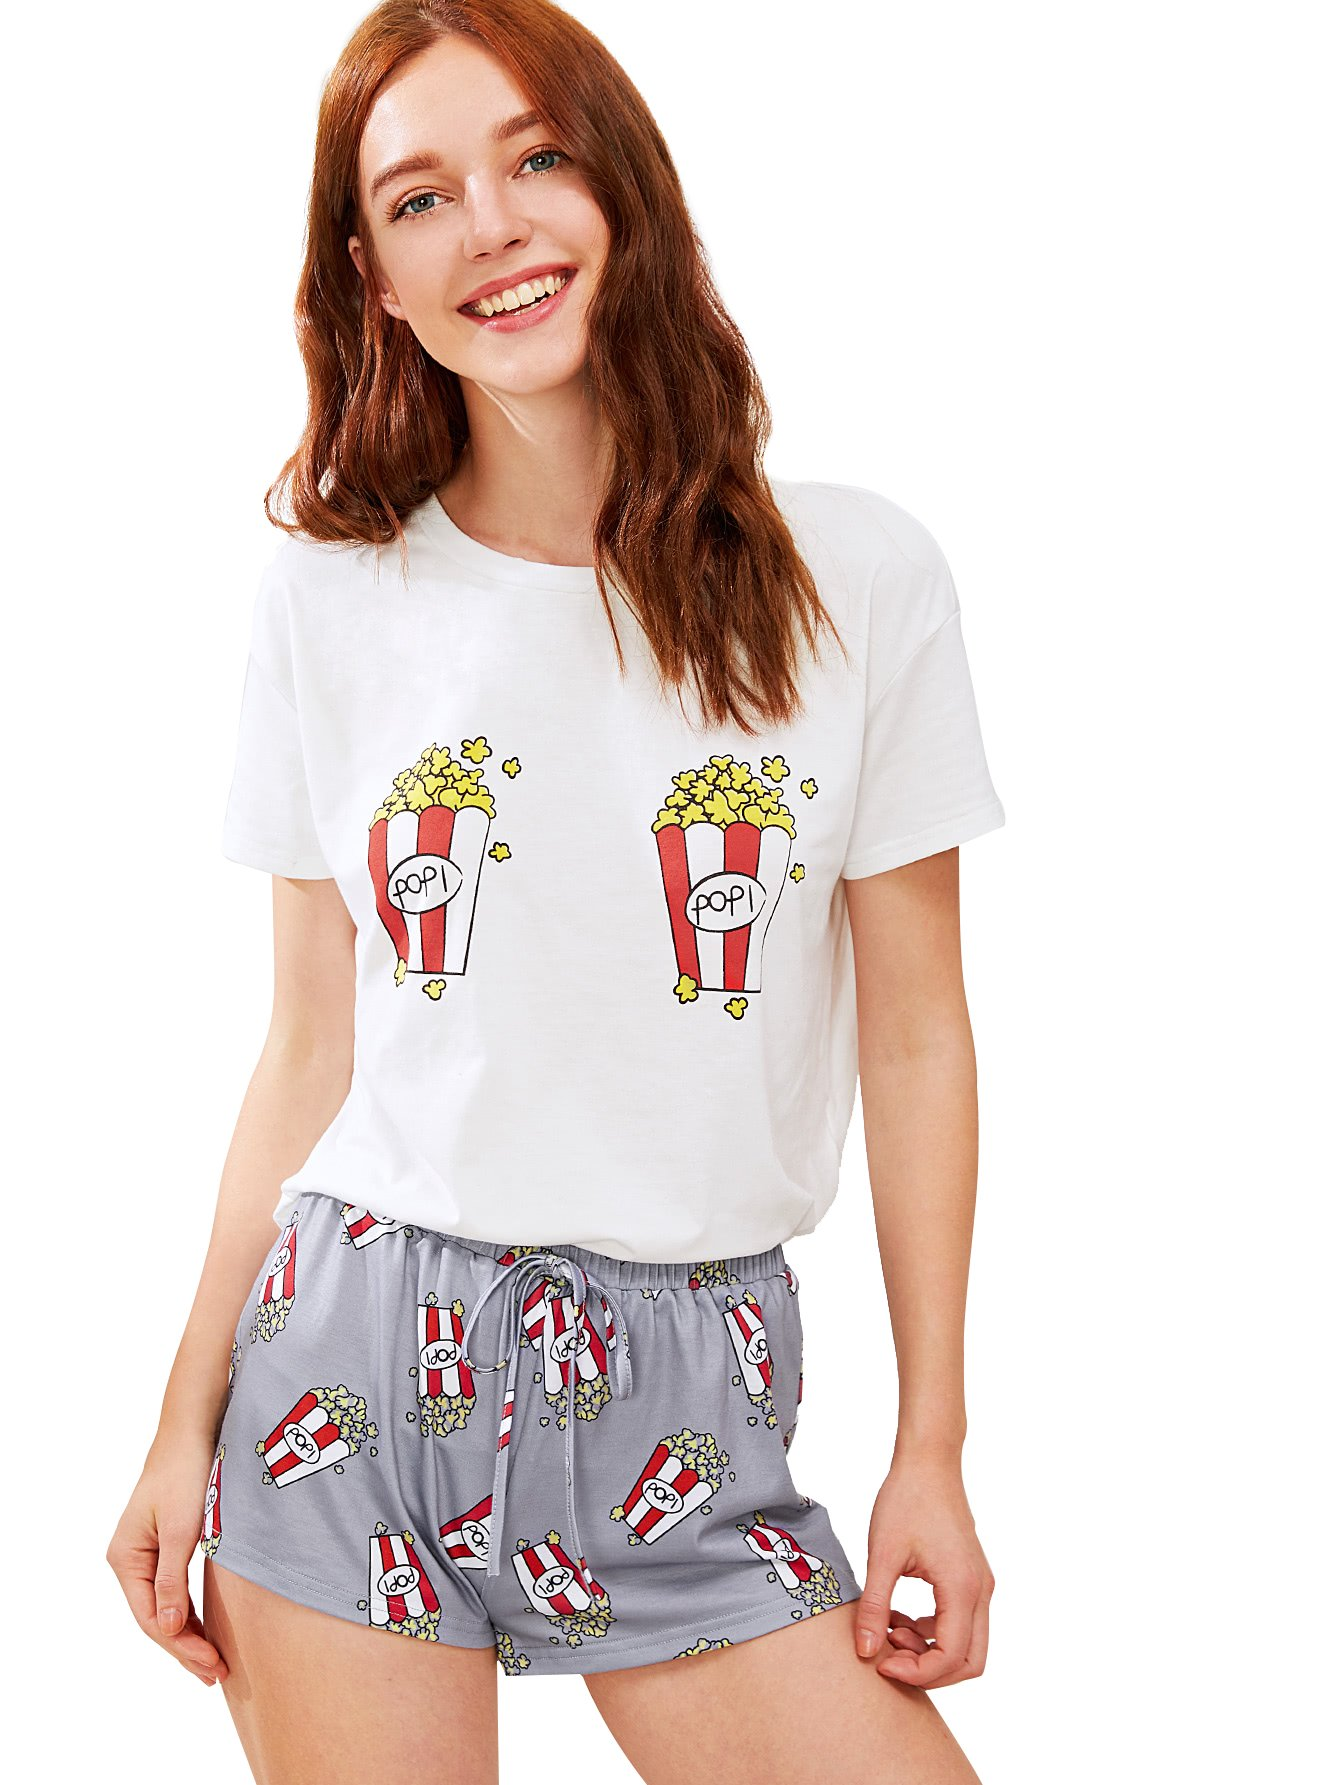 DIDK Women's Cute Cartoon Print Tee and Shorts Pajama Set White XL